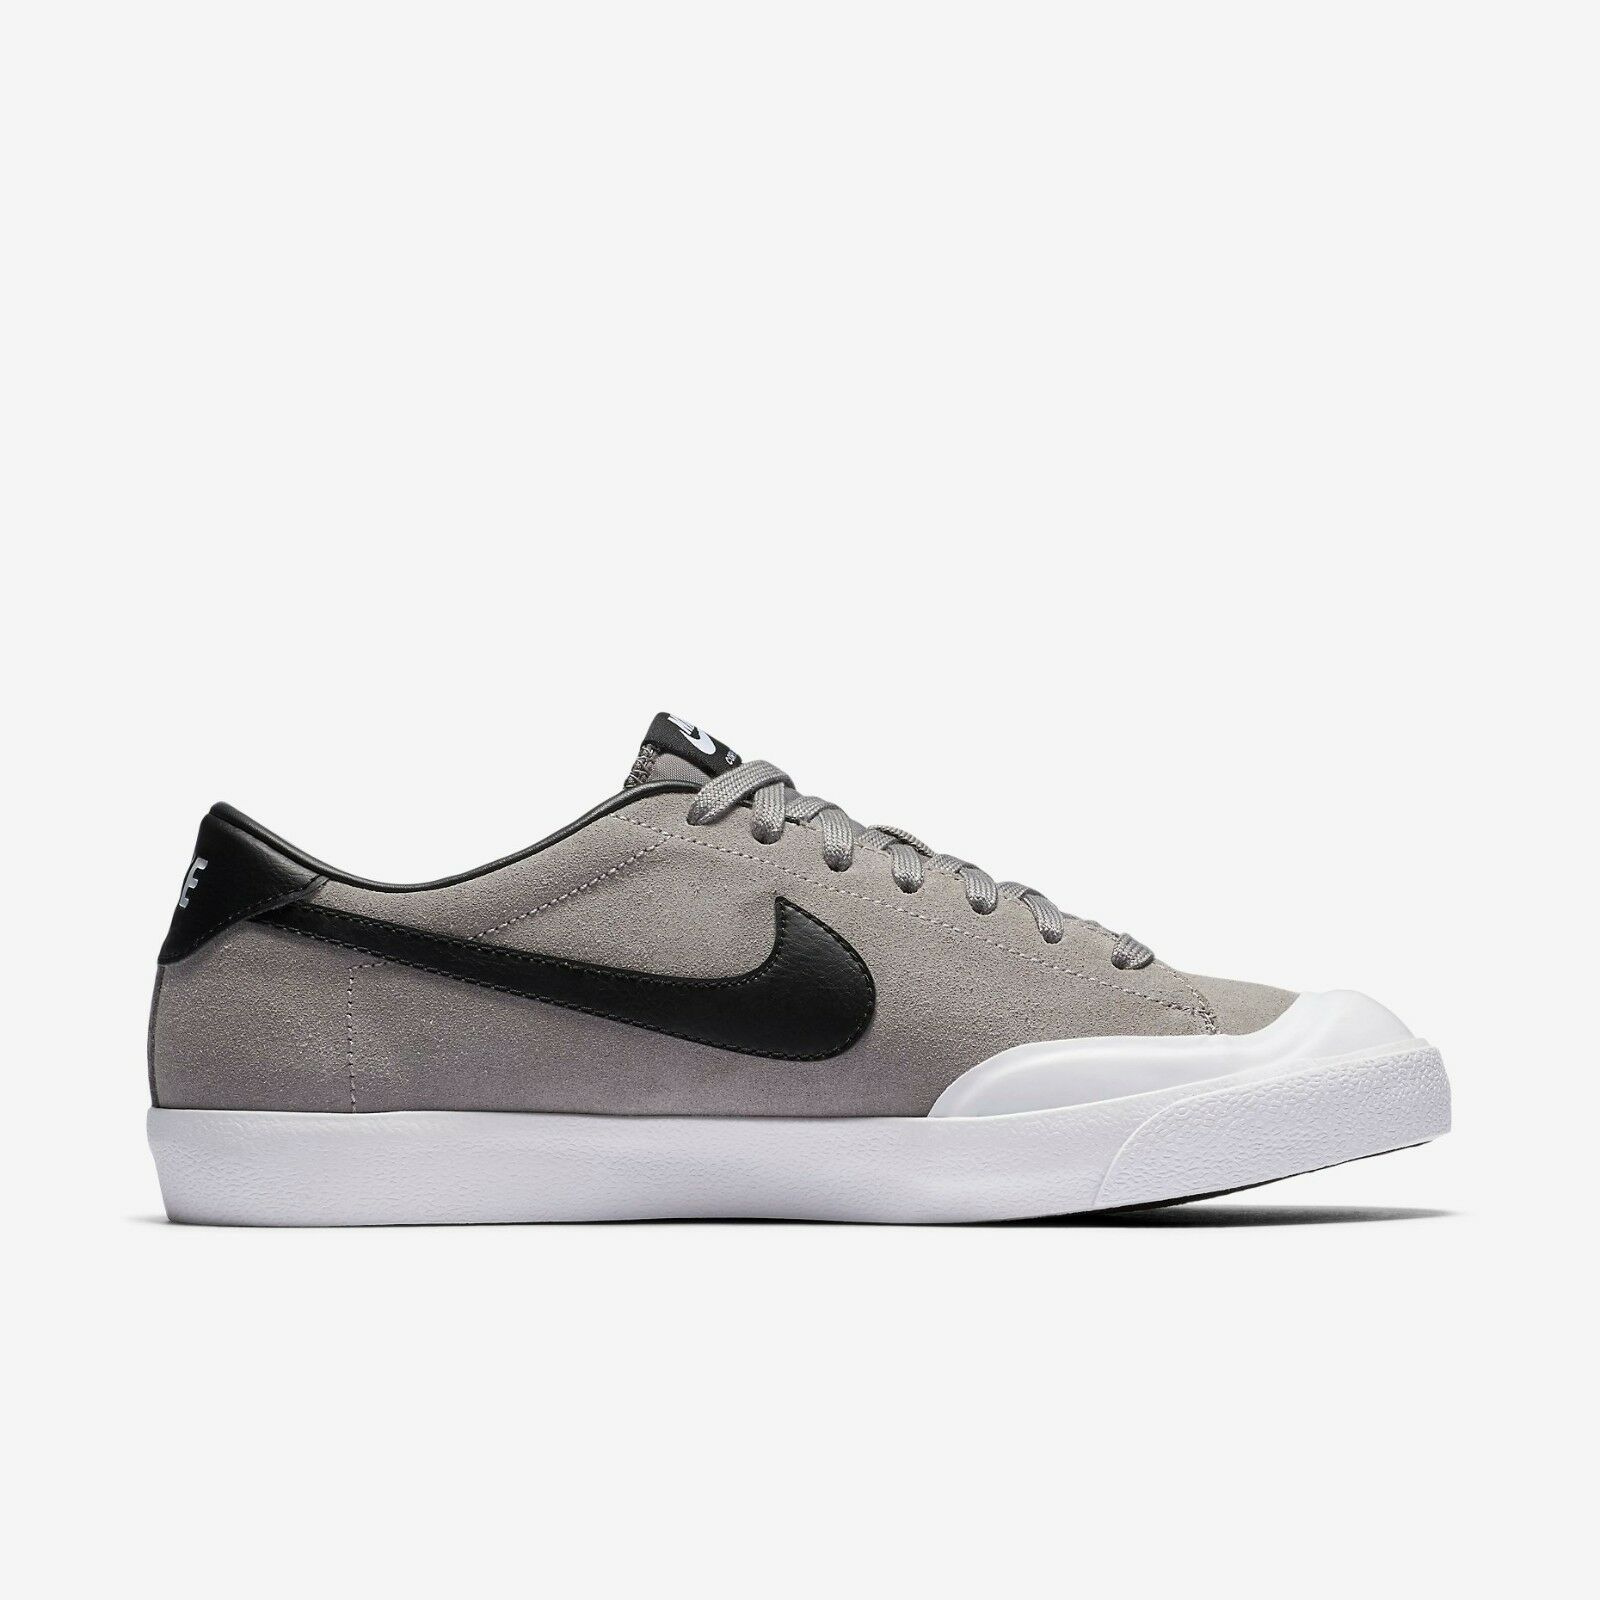 Nike SB Zoom All Court CK shoes in Dust Black White - 8 10.5 11 NWT 806306-002